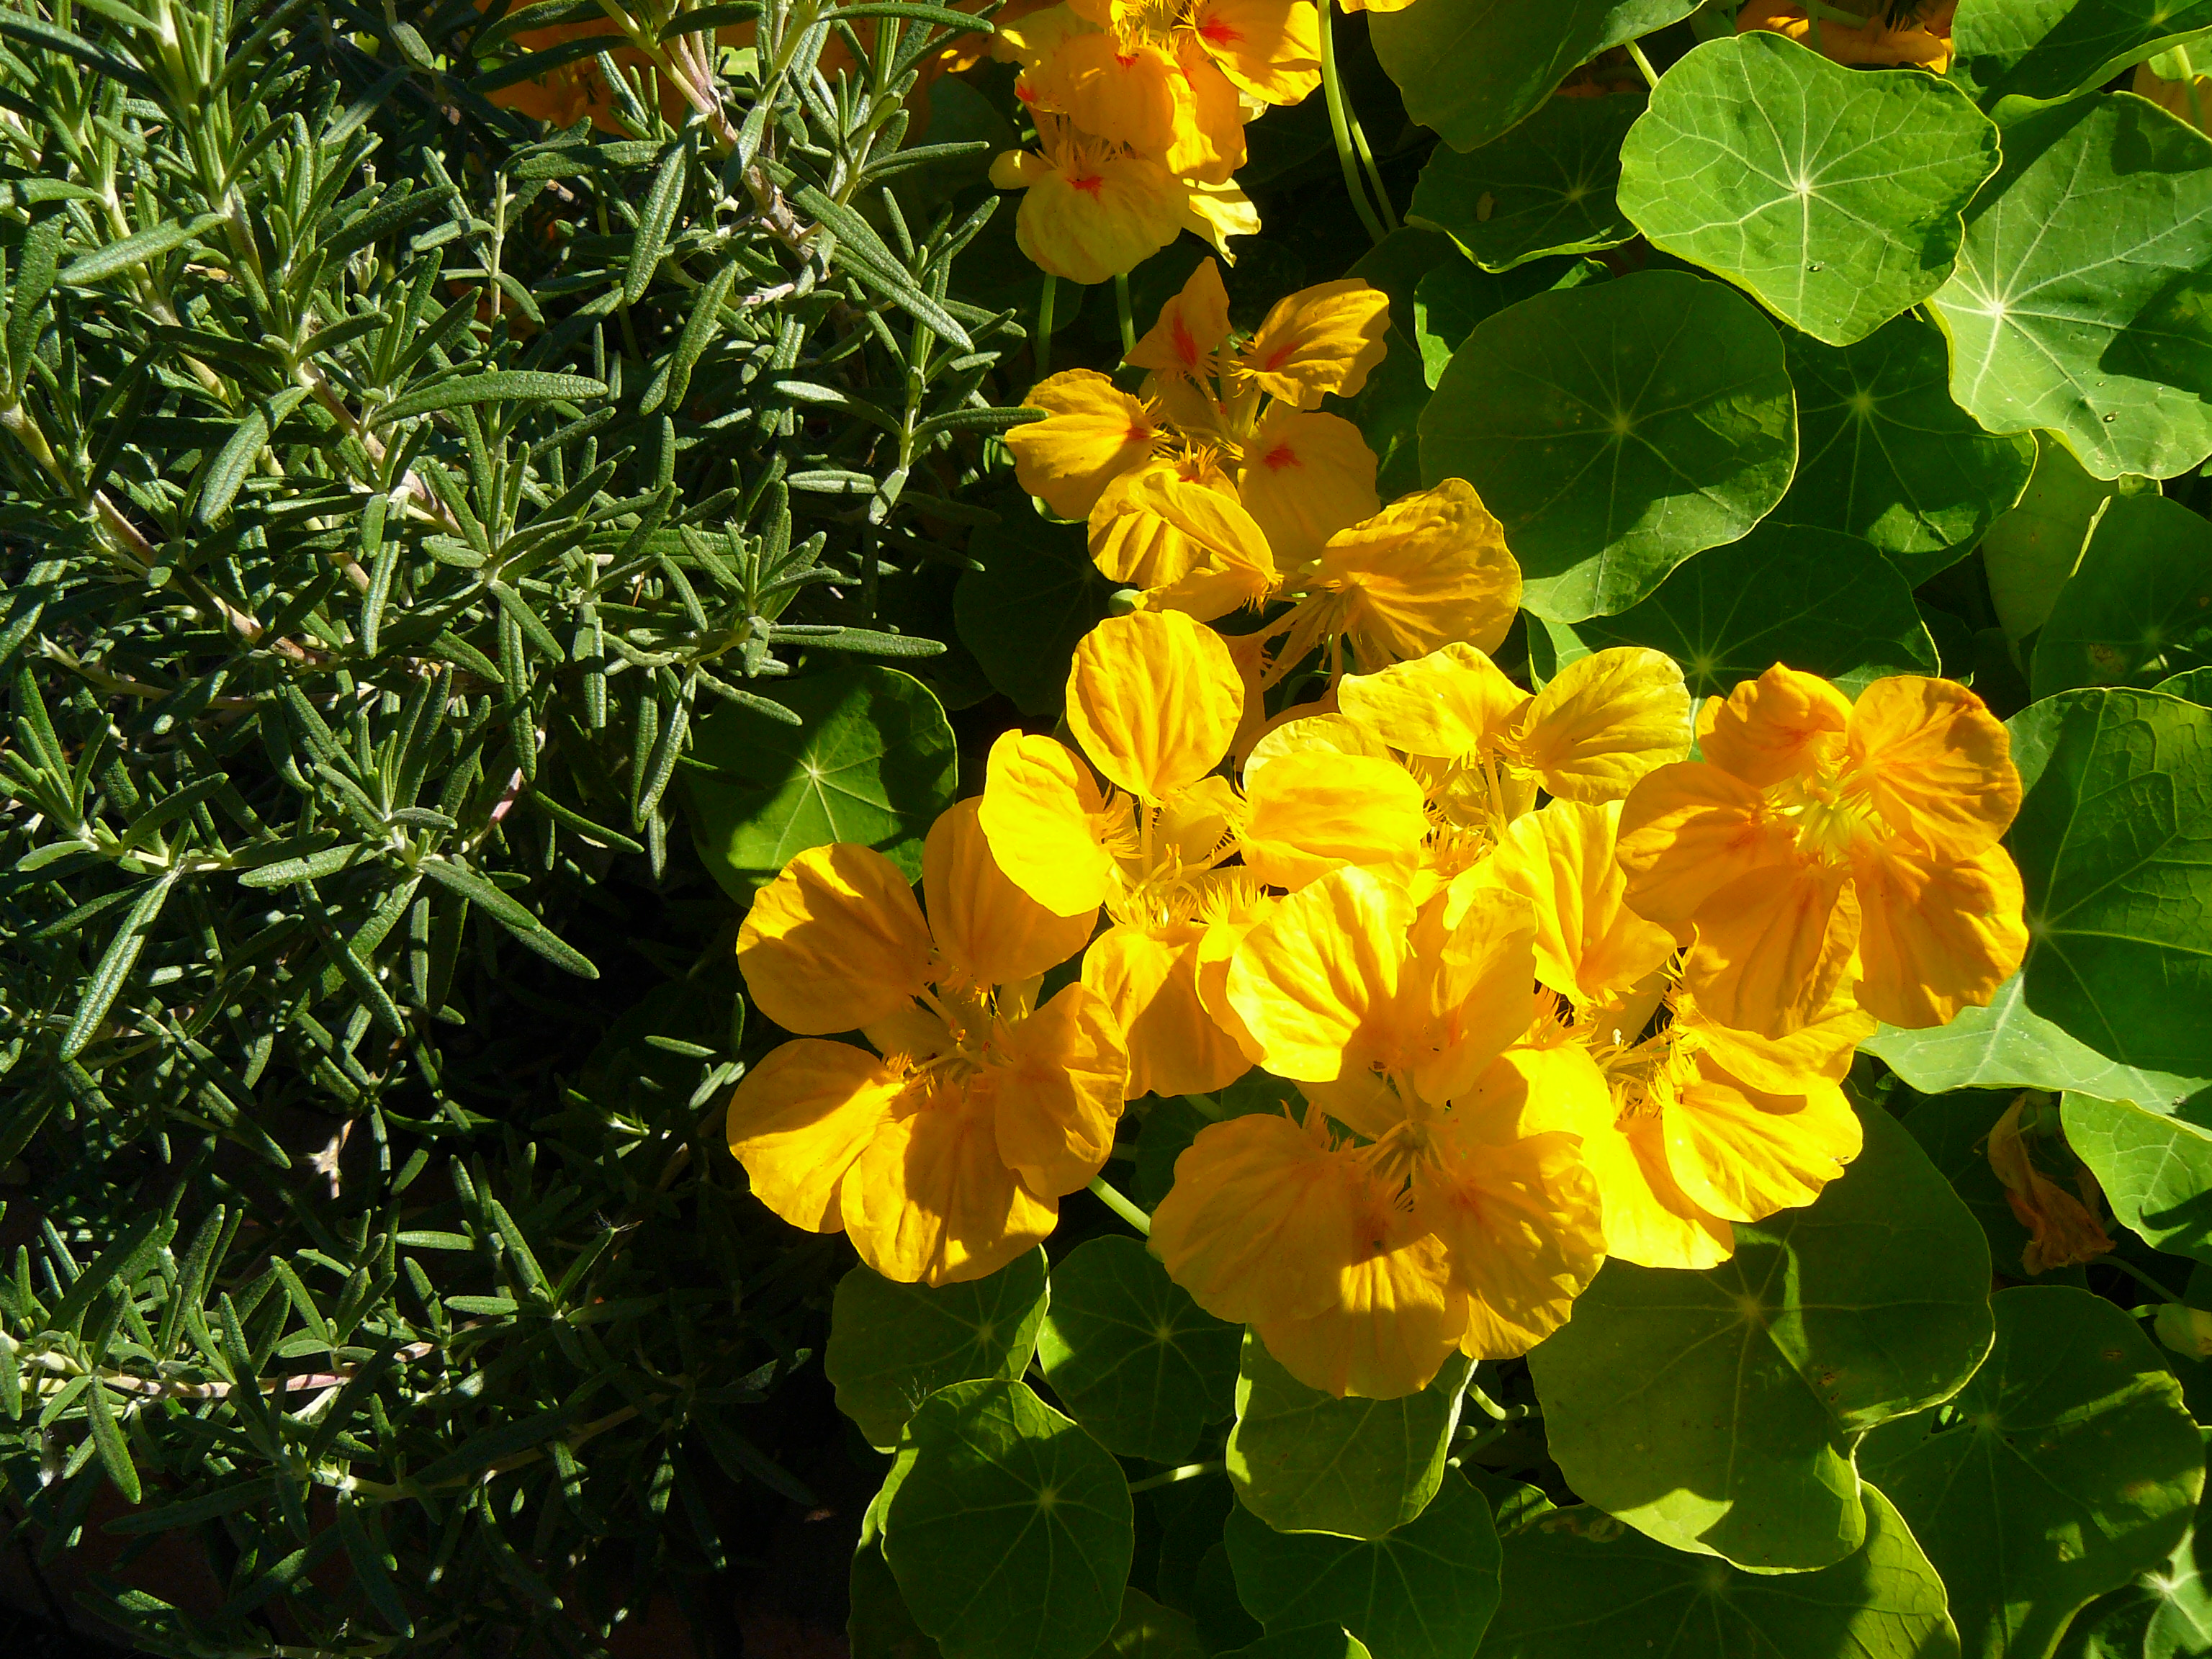 Rosemary planted next to bright gold flowers of 'Whirlybird Gold' nasturtium.